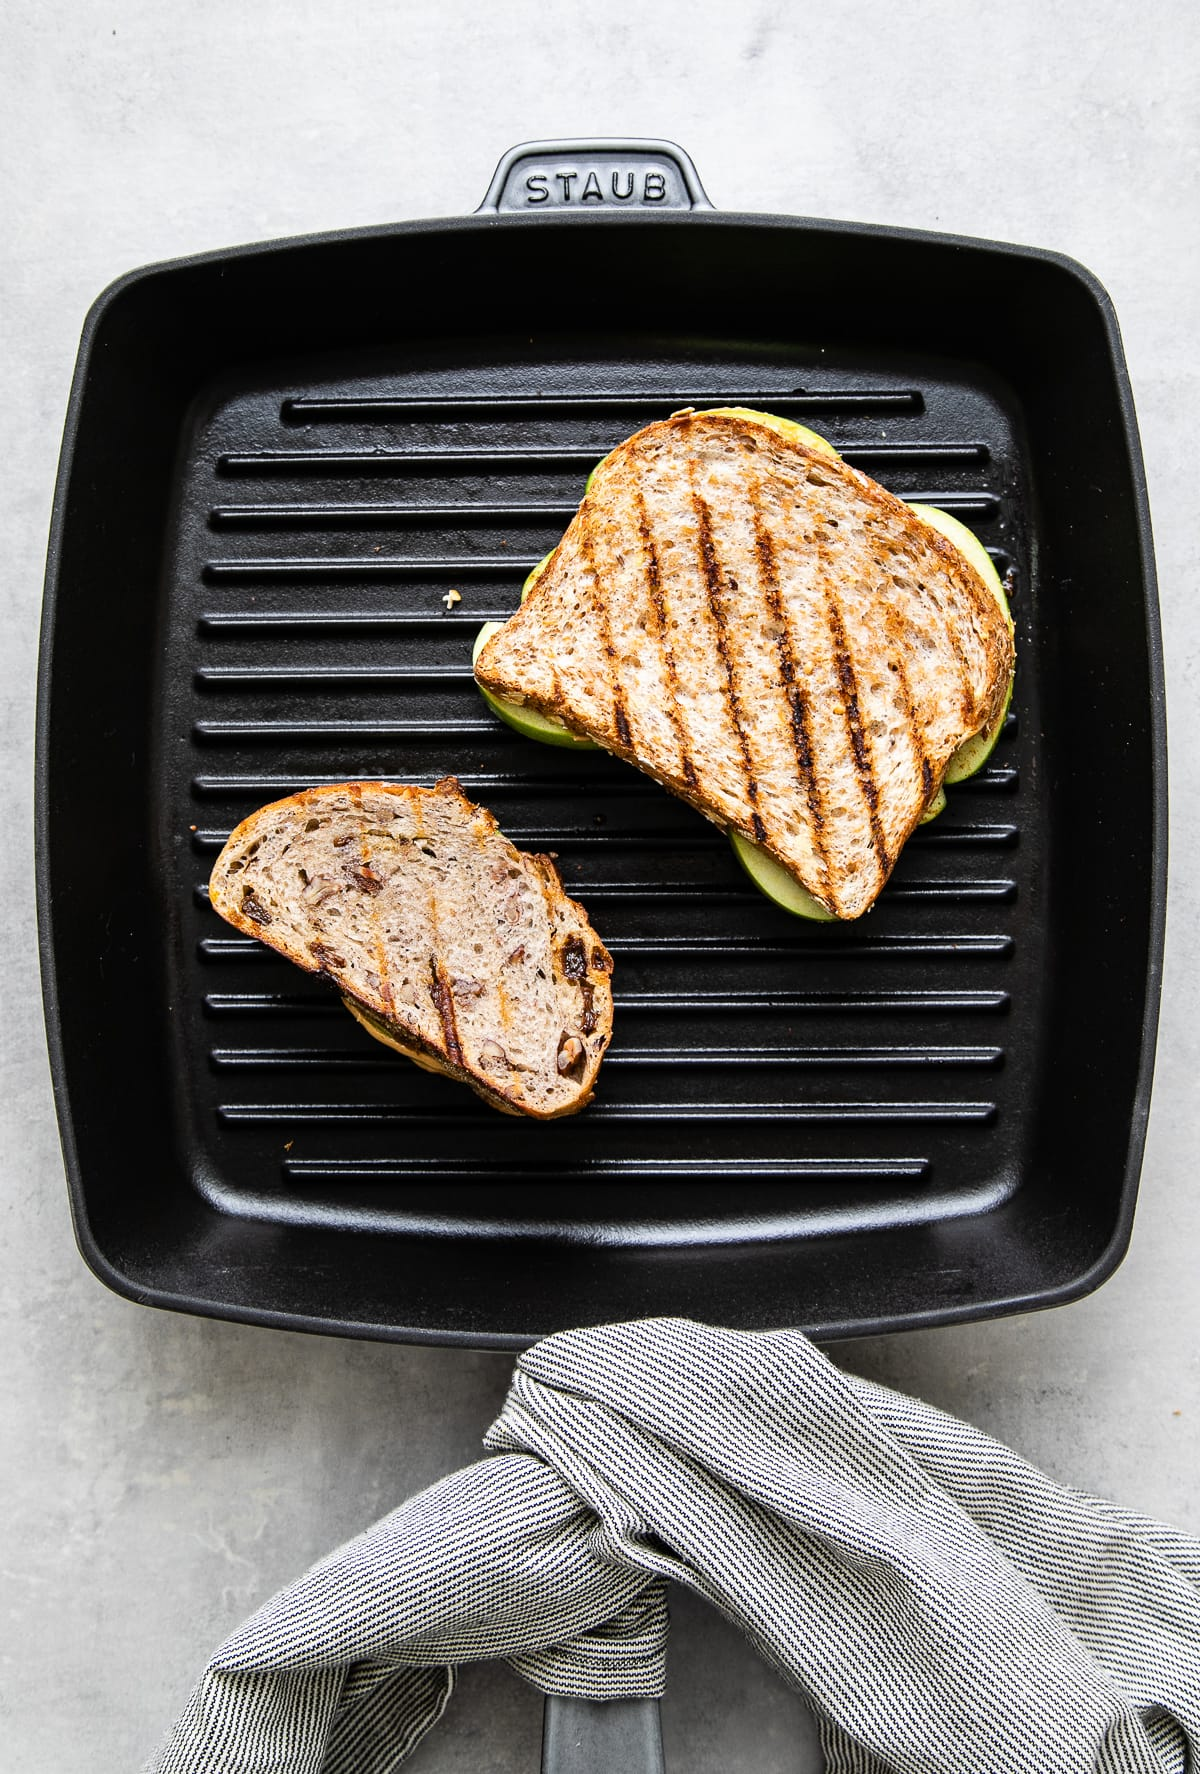 top down view of two sandwiches on a griddle.